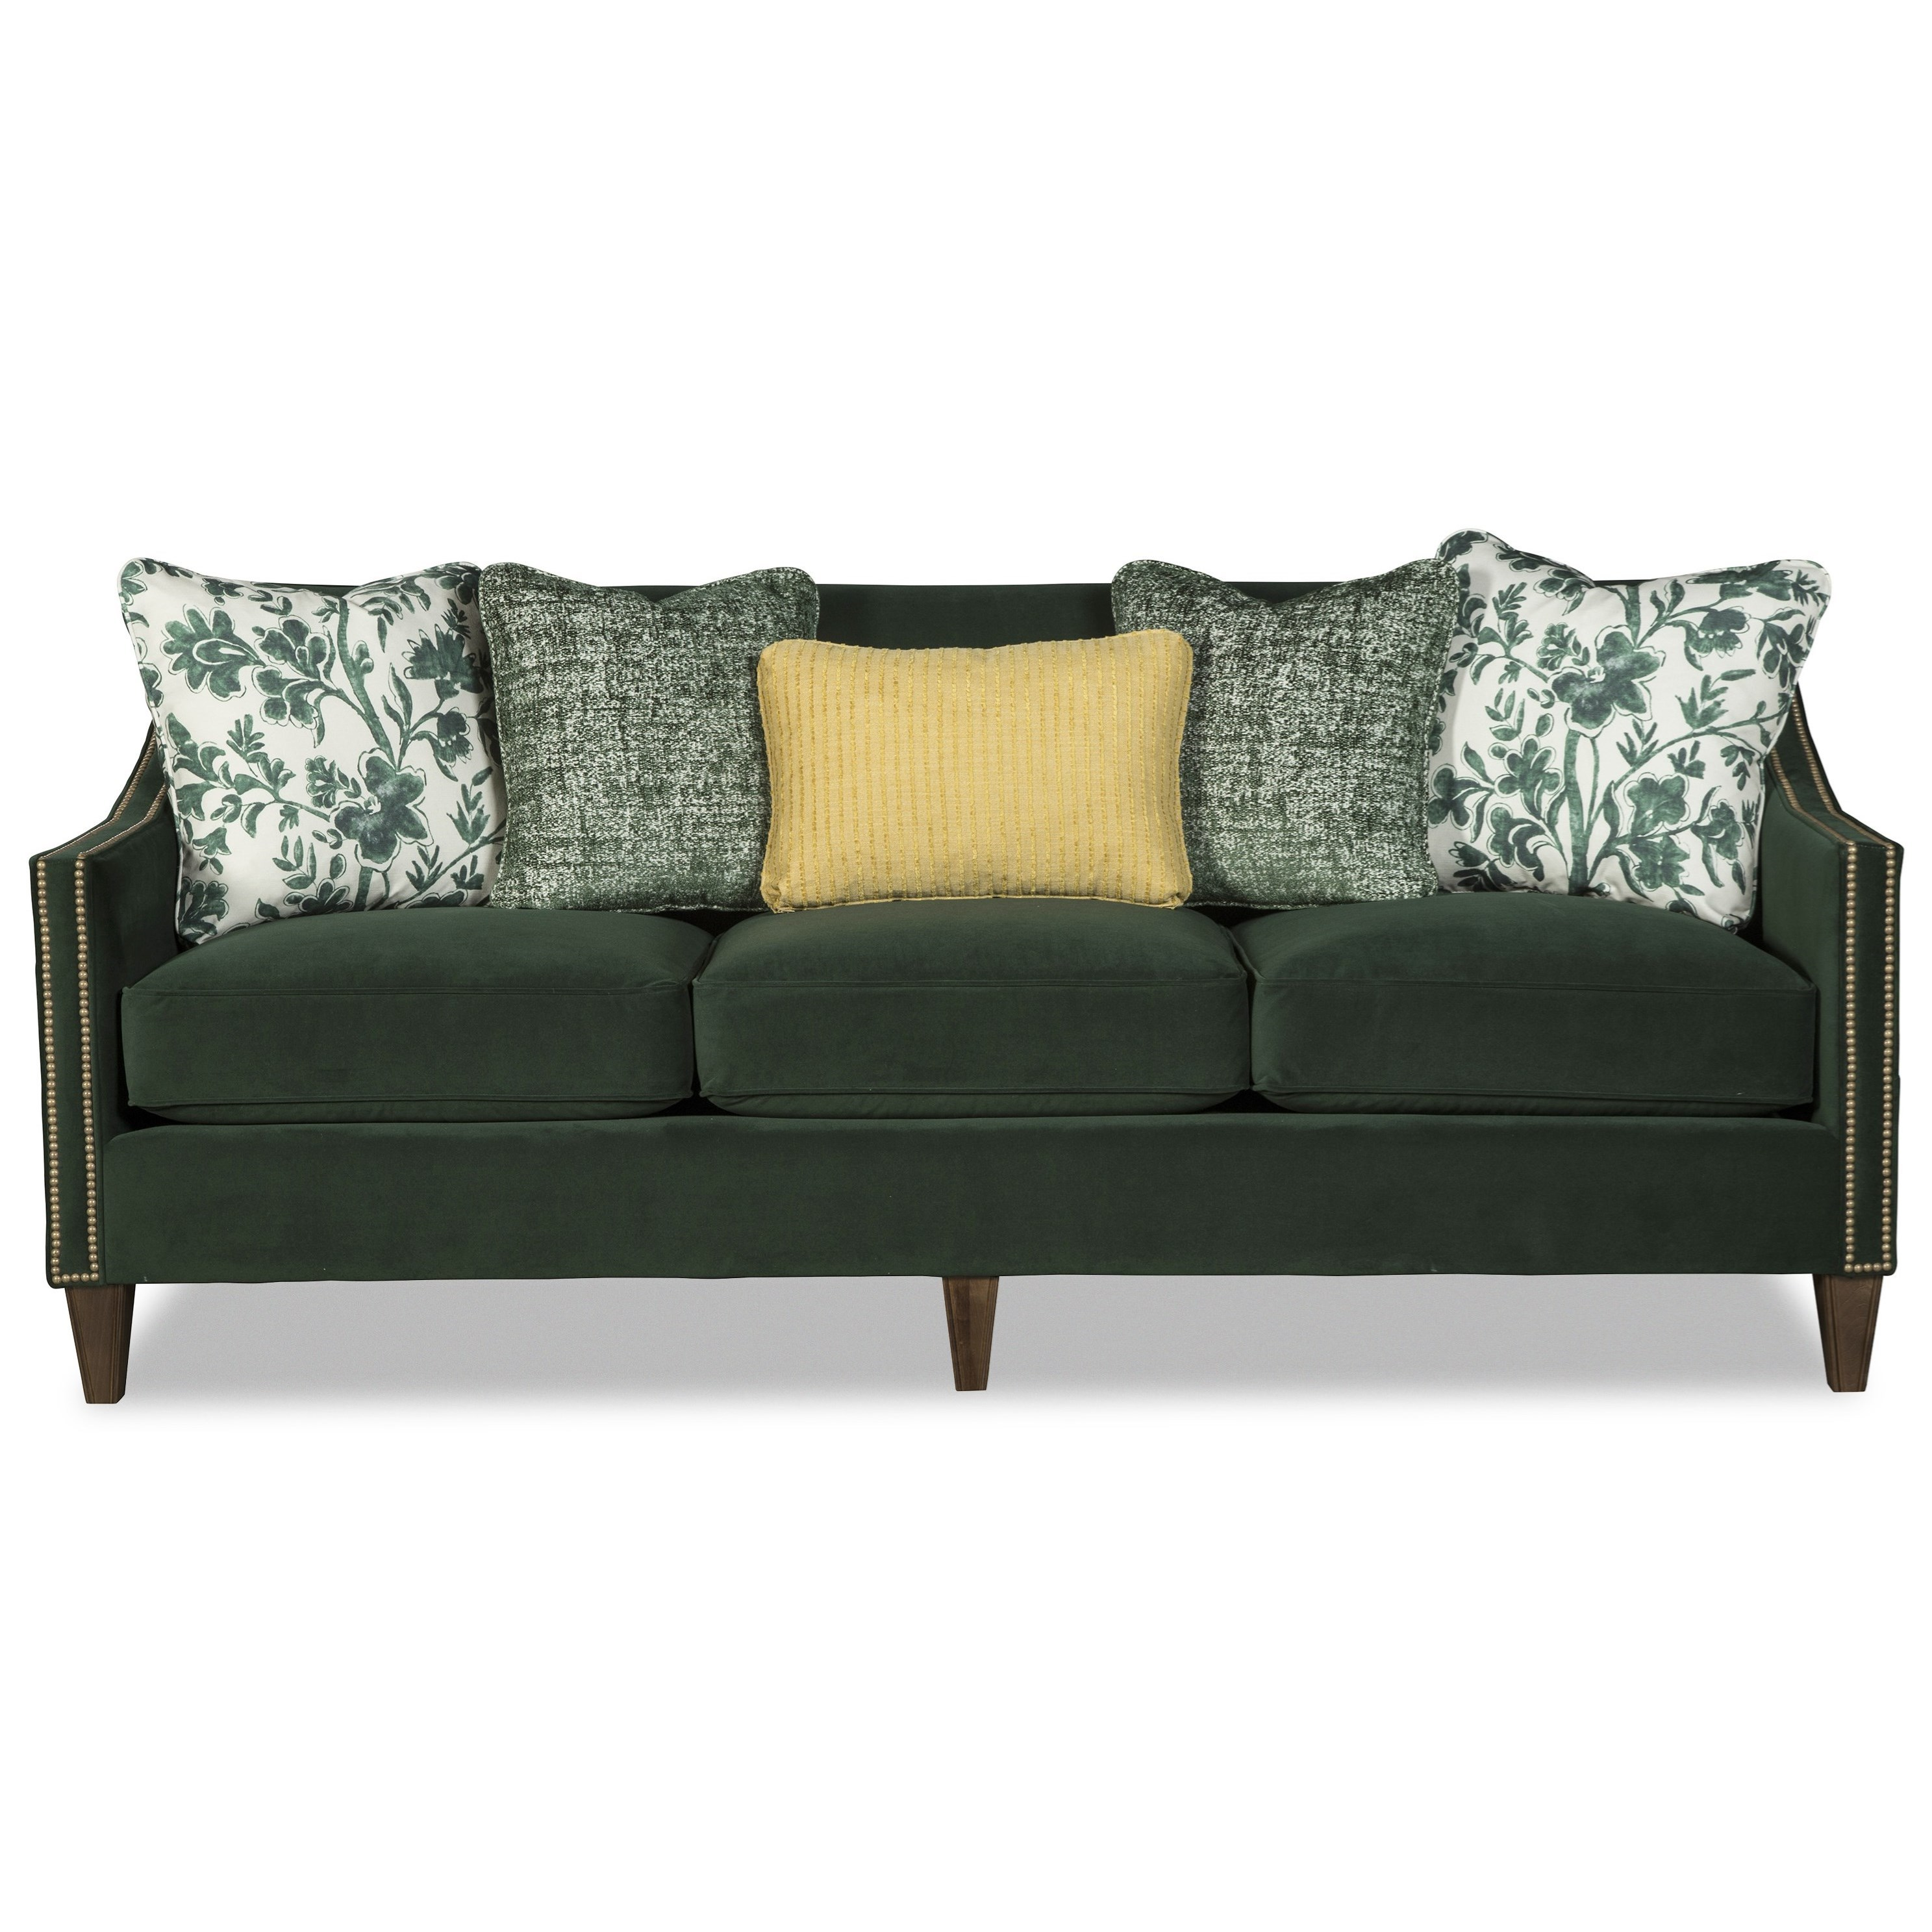 703950 Sofa by Craftmaster at Prime Brothers Furniture